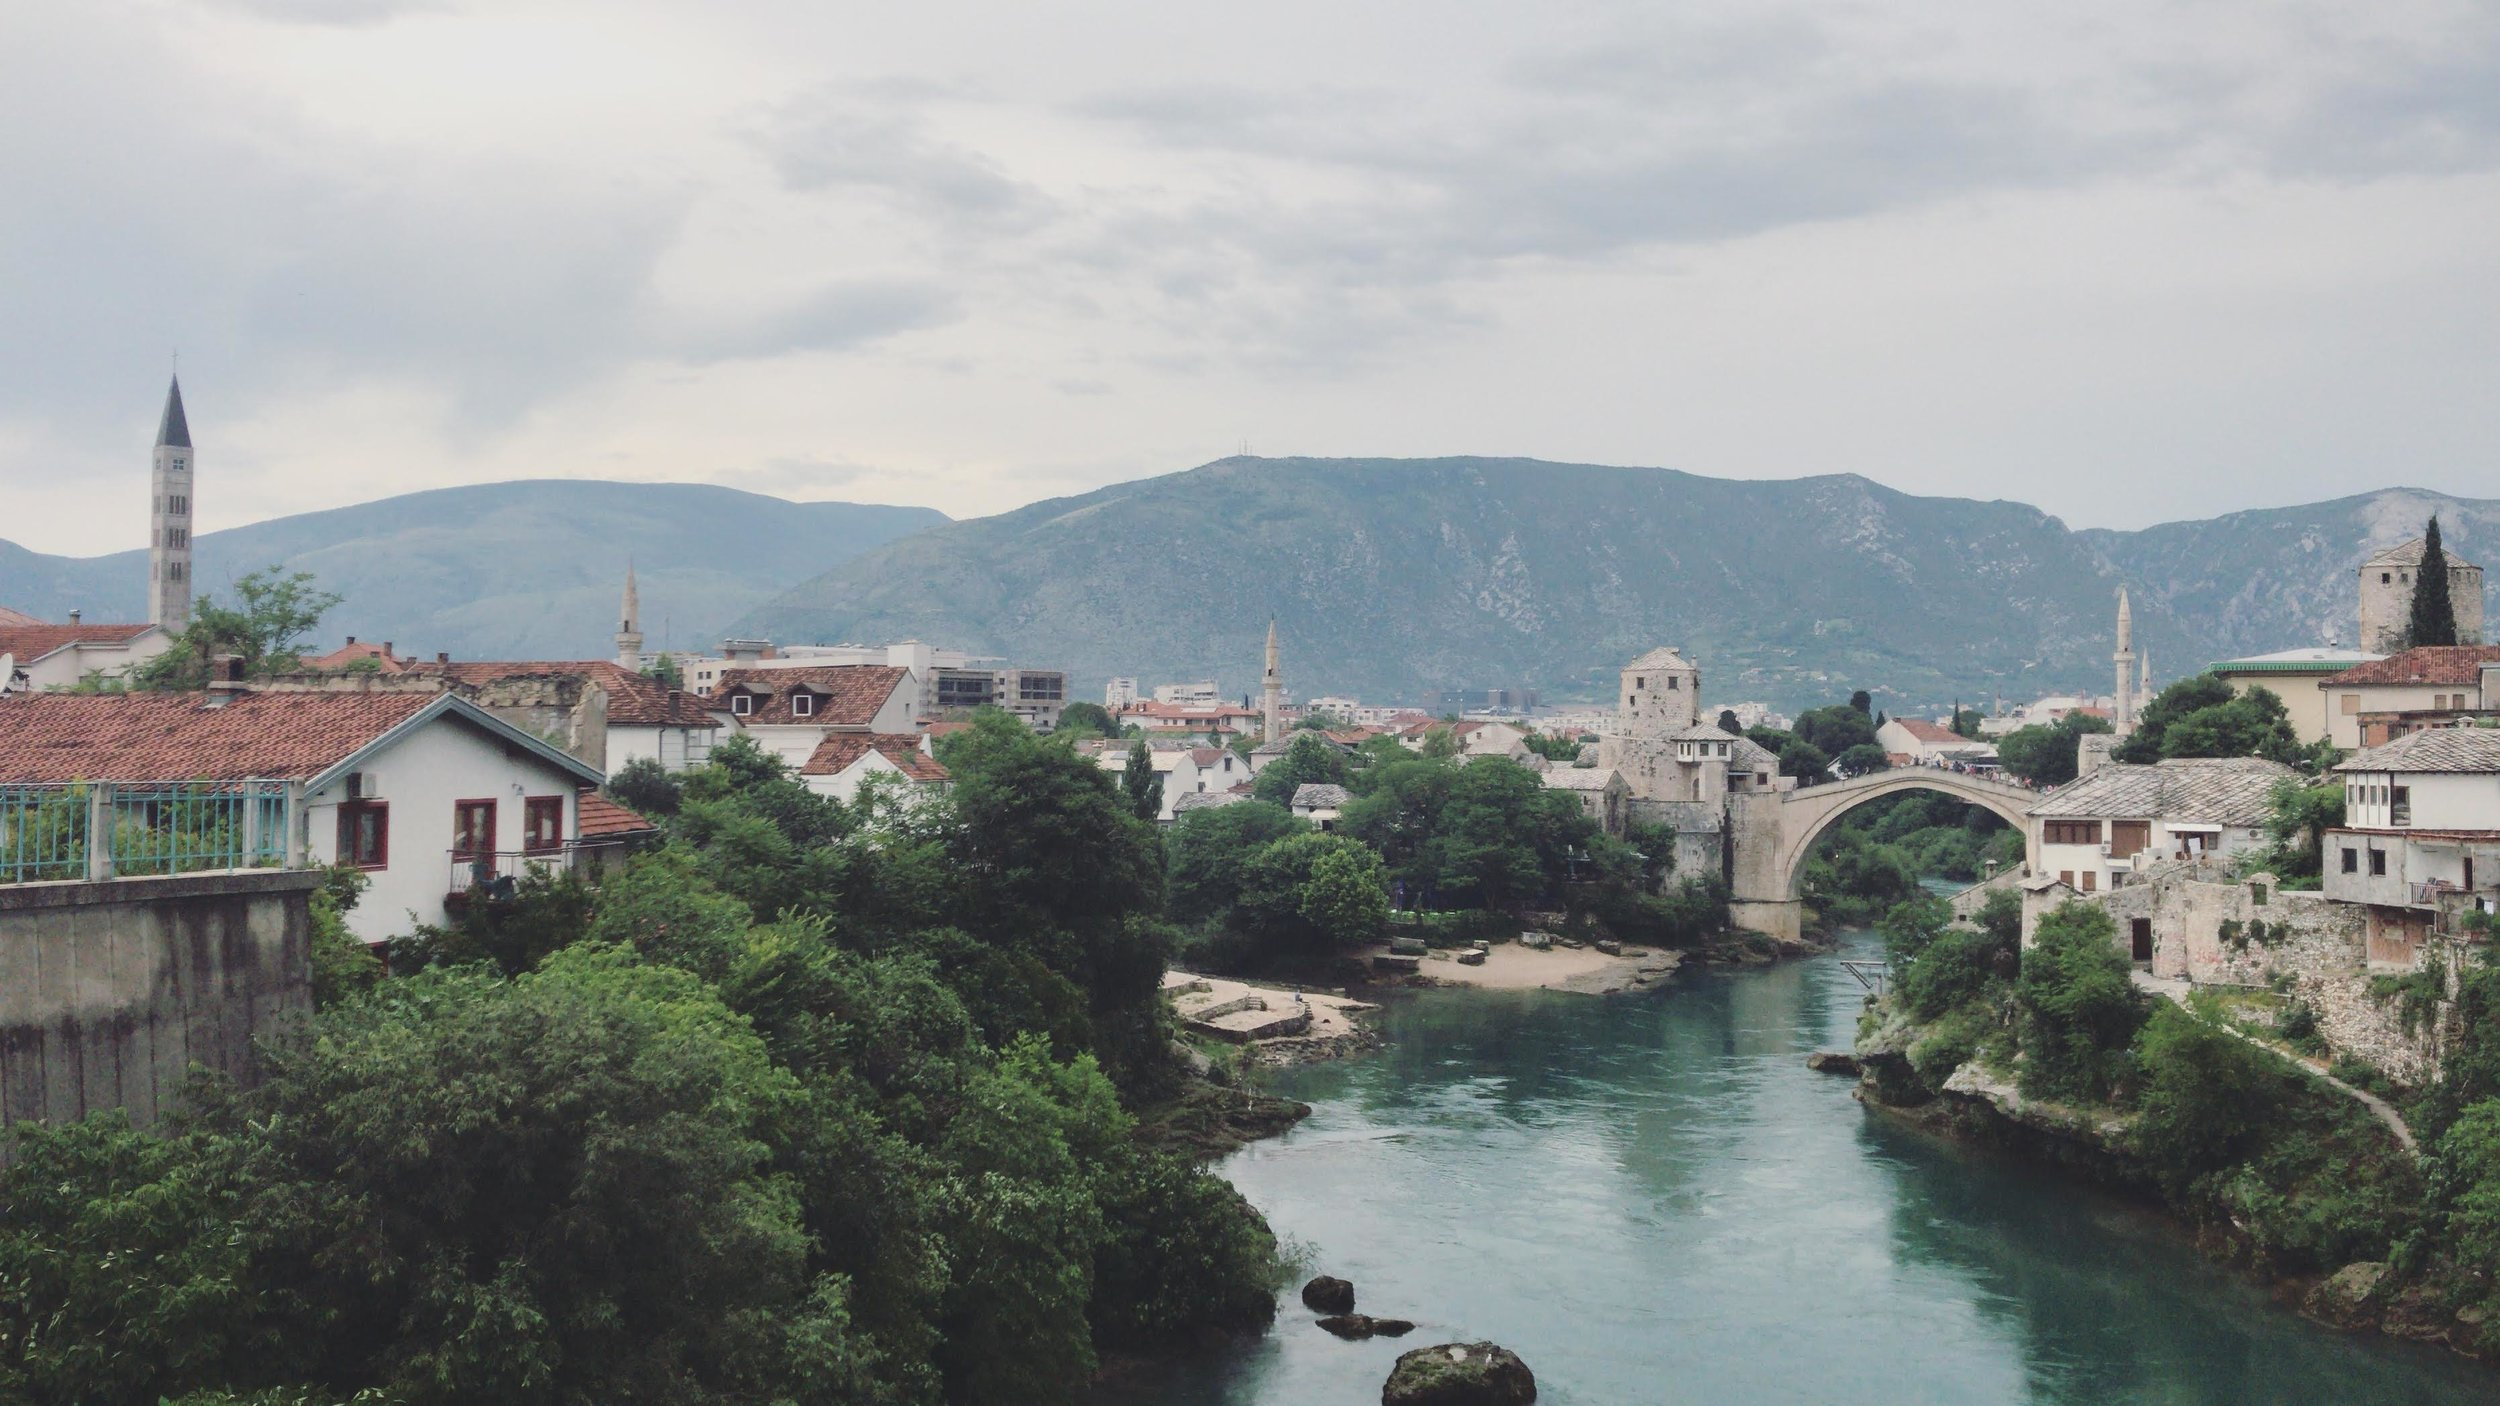 THE LAST YUGOSLAVS - A filmmaker goes back to her forgotten country searching for the meaning of identity.